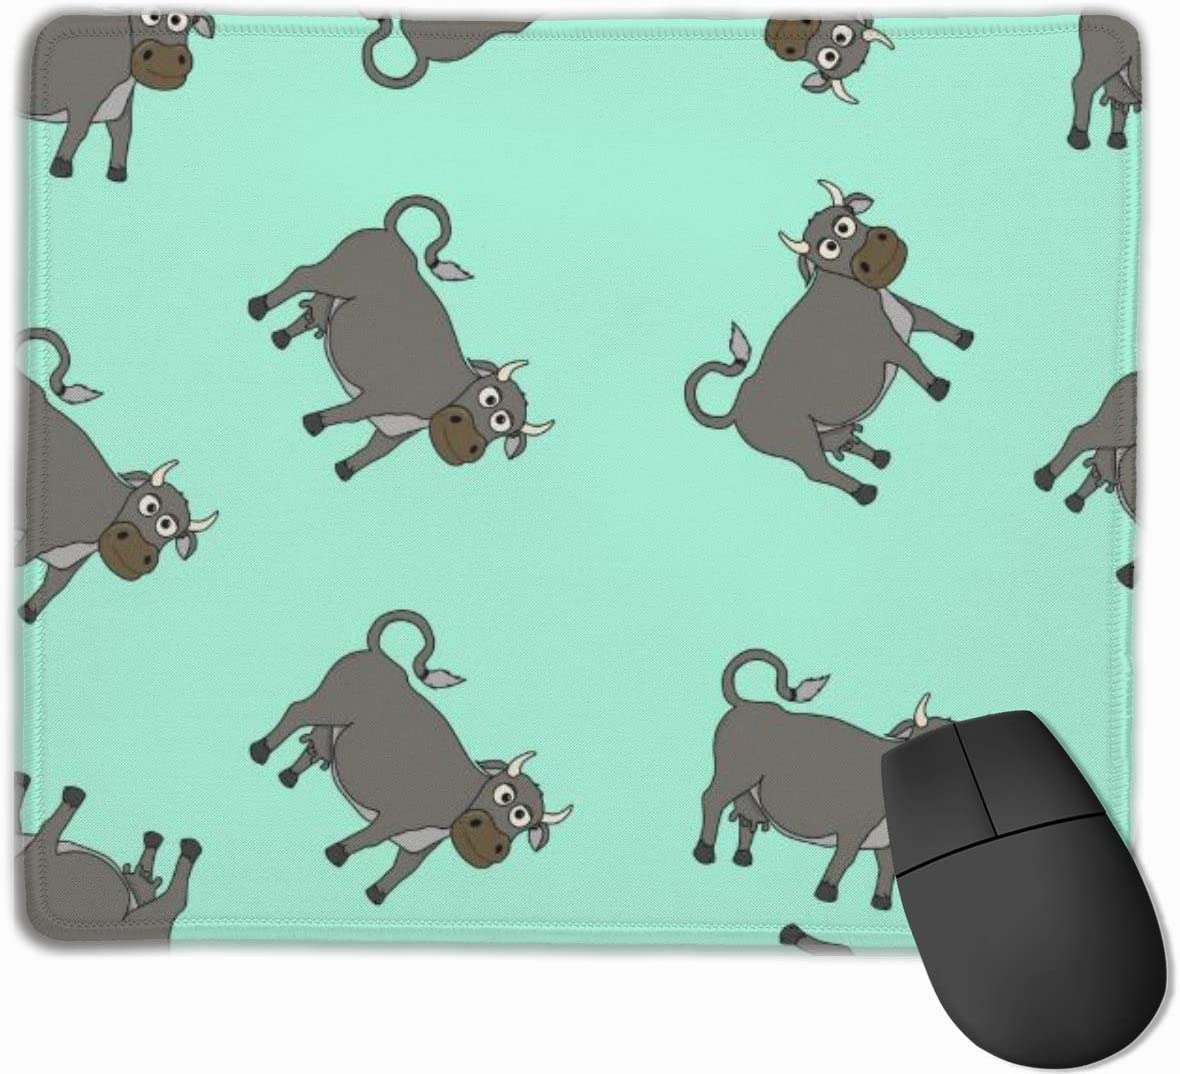 Mouse Pad Cartoon Cow Seamless Smooth Comfortable Gaming Mouse Pad with Non-Slip Rubber Base